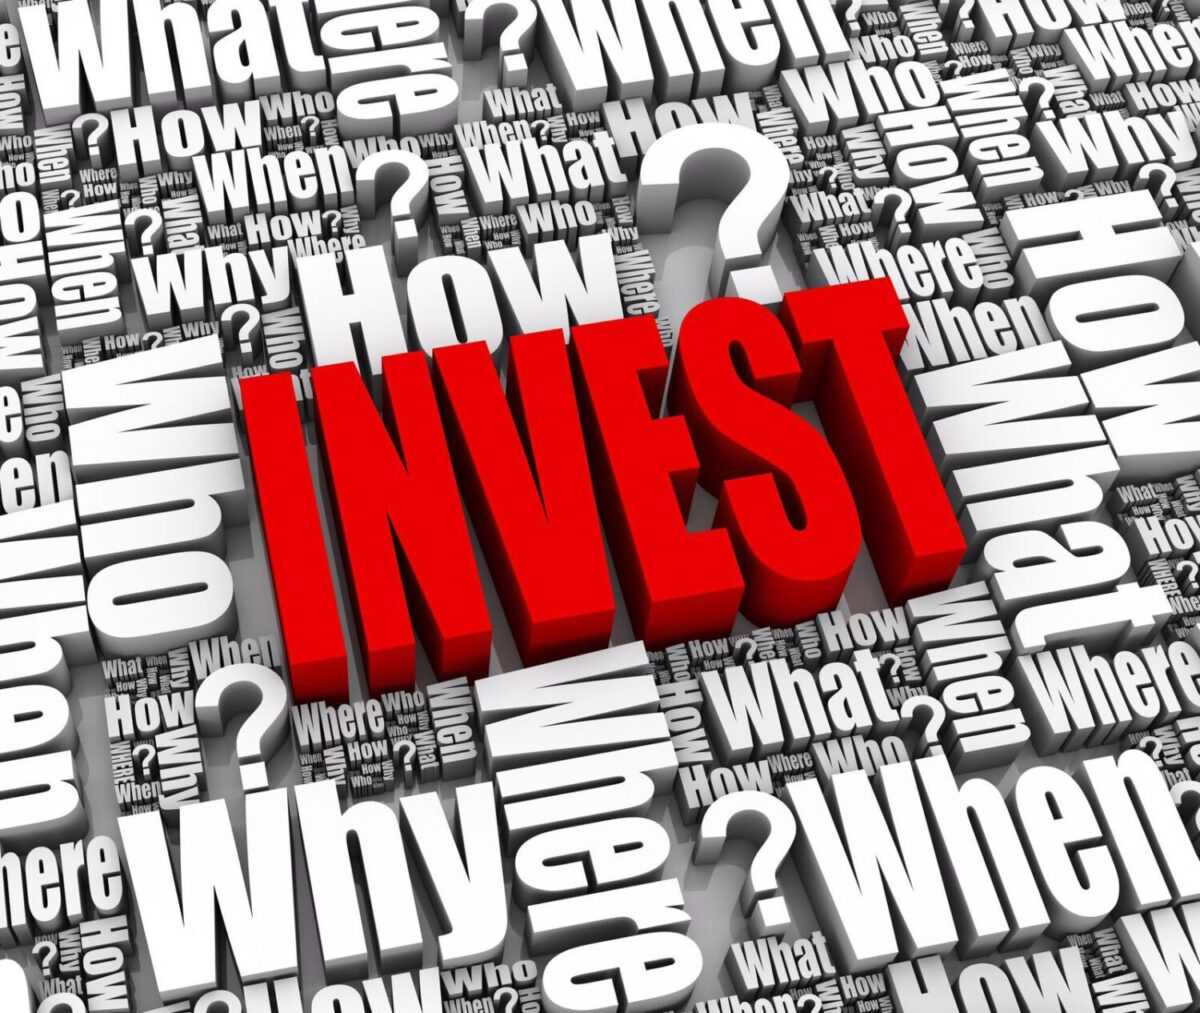 dfd06f4e 9d53 4a6b b101 9fd1d4858fec - What are the main trends in investments nowadays?